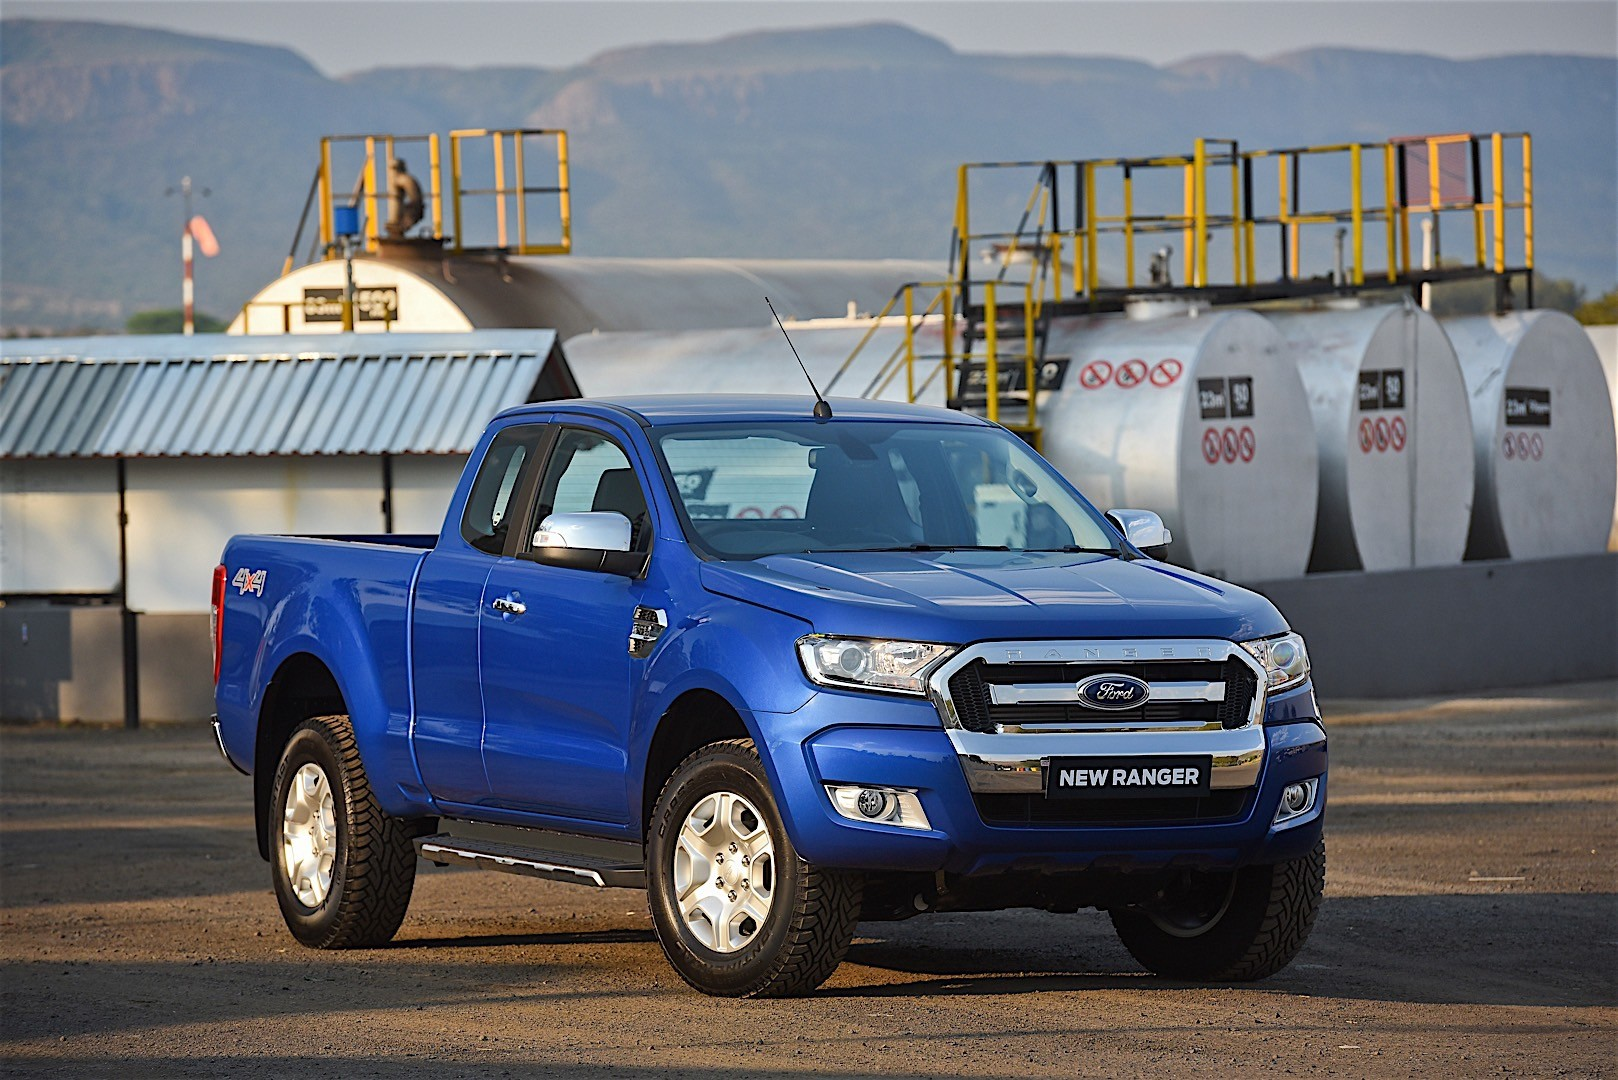 Ford Ranger 2017 >> FORD Ranger Super Cab specs & photos - 2015, 2016, 2017, 2018, 2019 - autoevolution